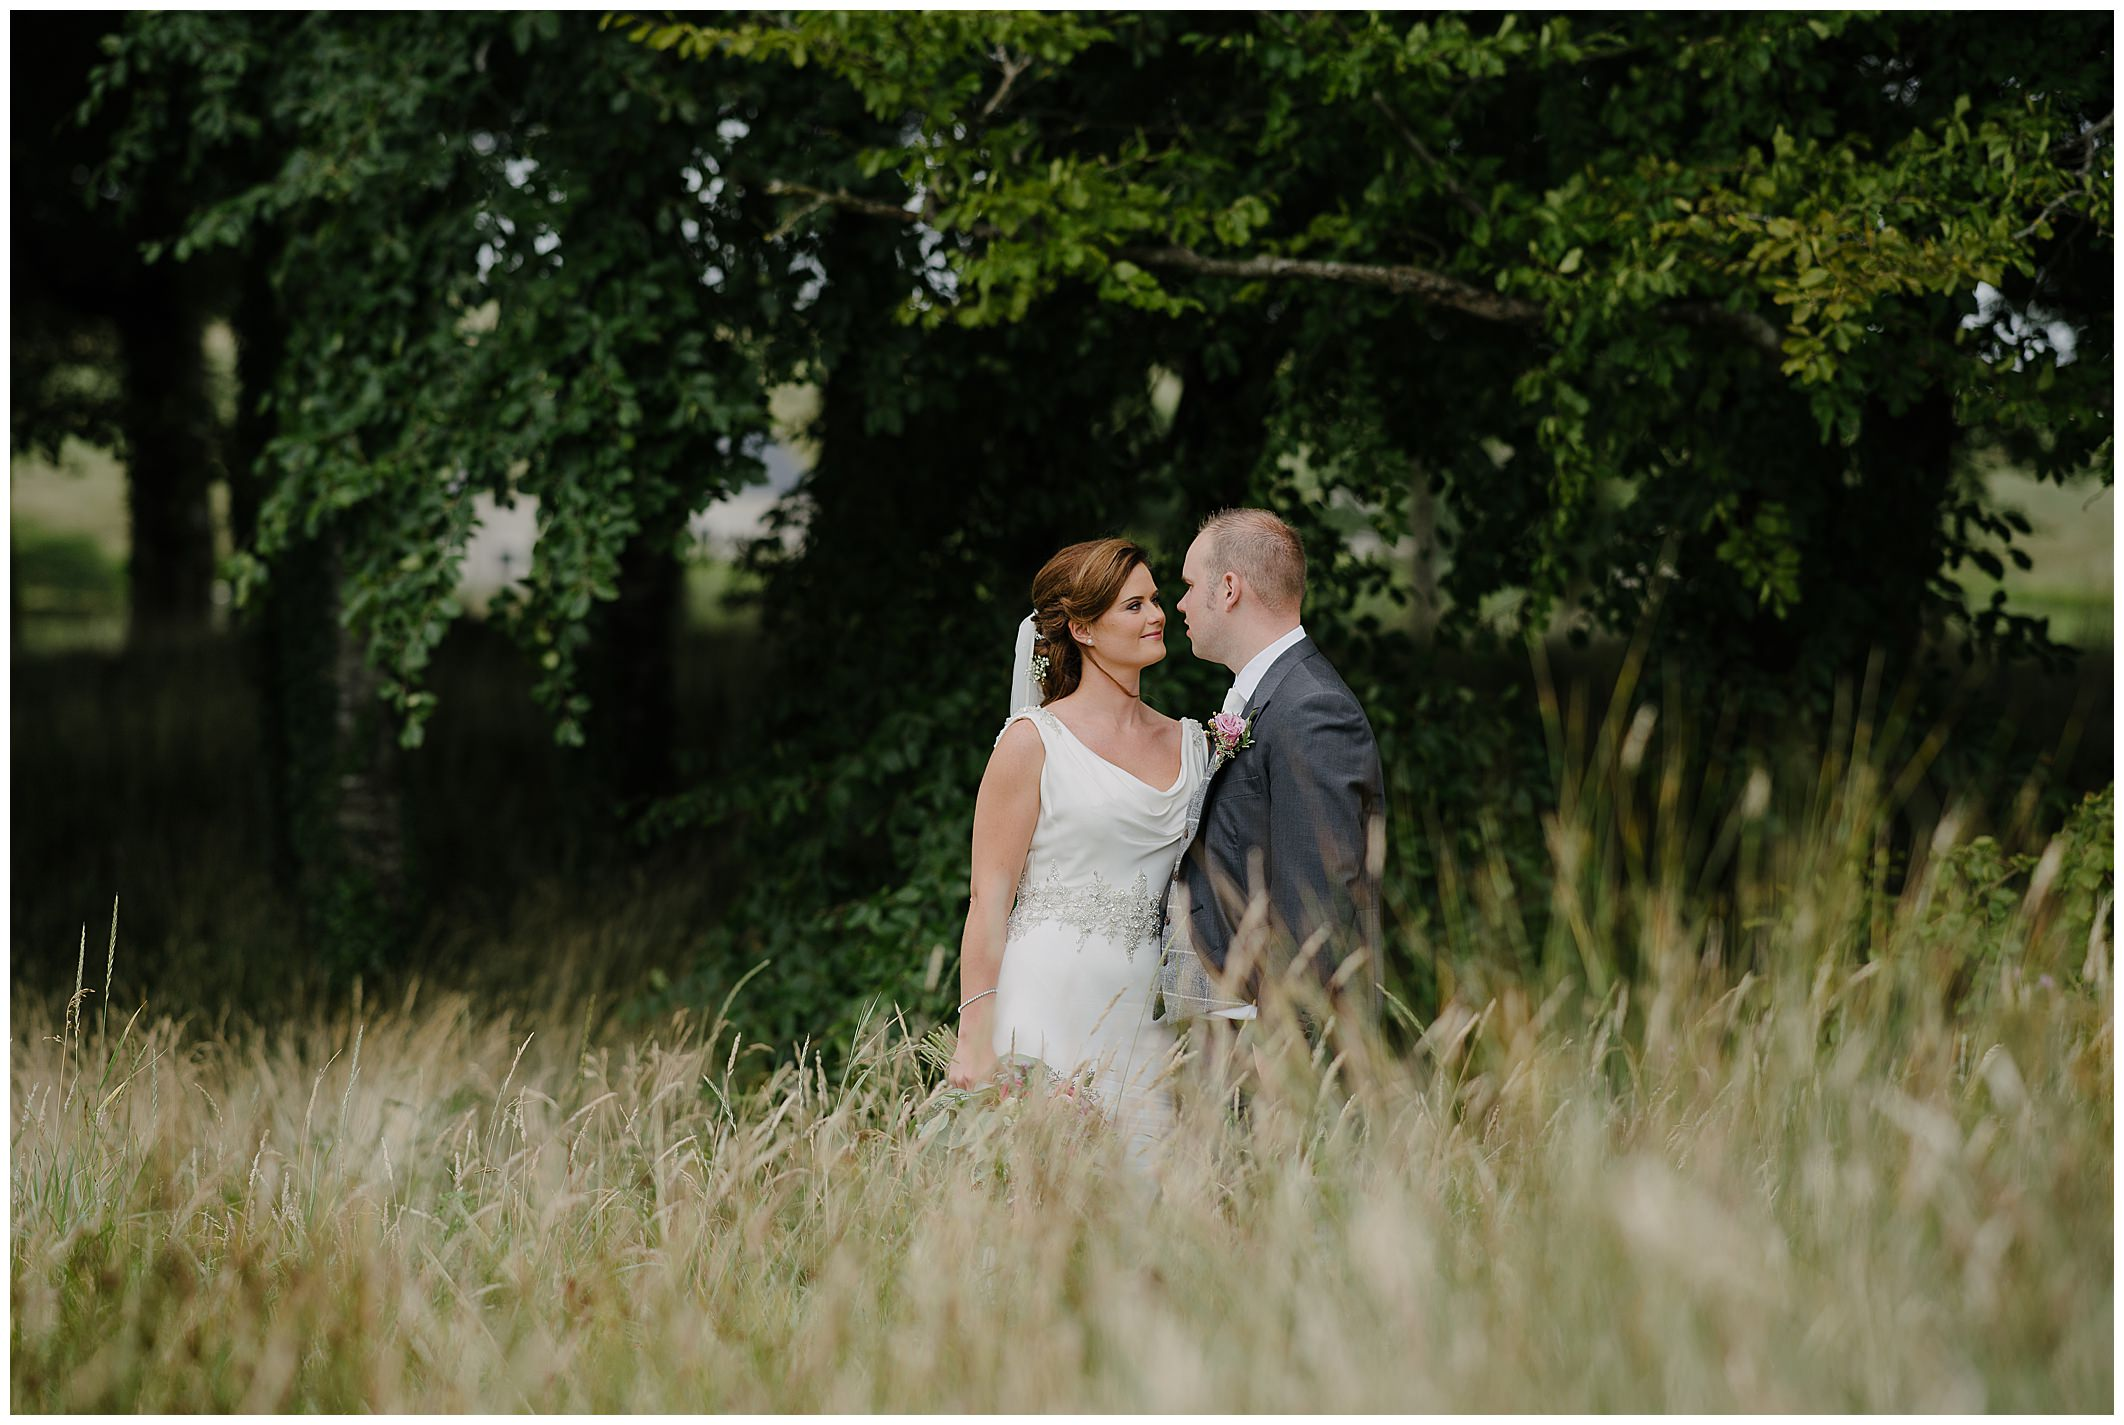 Irish-wedding-photographer-jude-browne-photography_0297.JPG